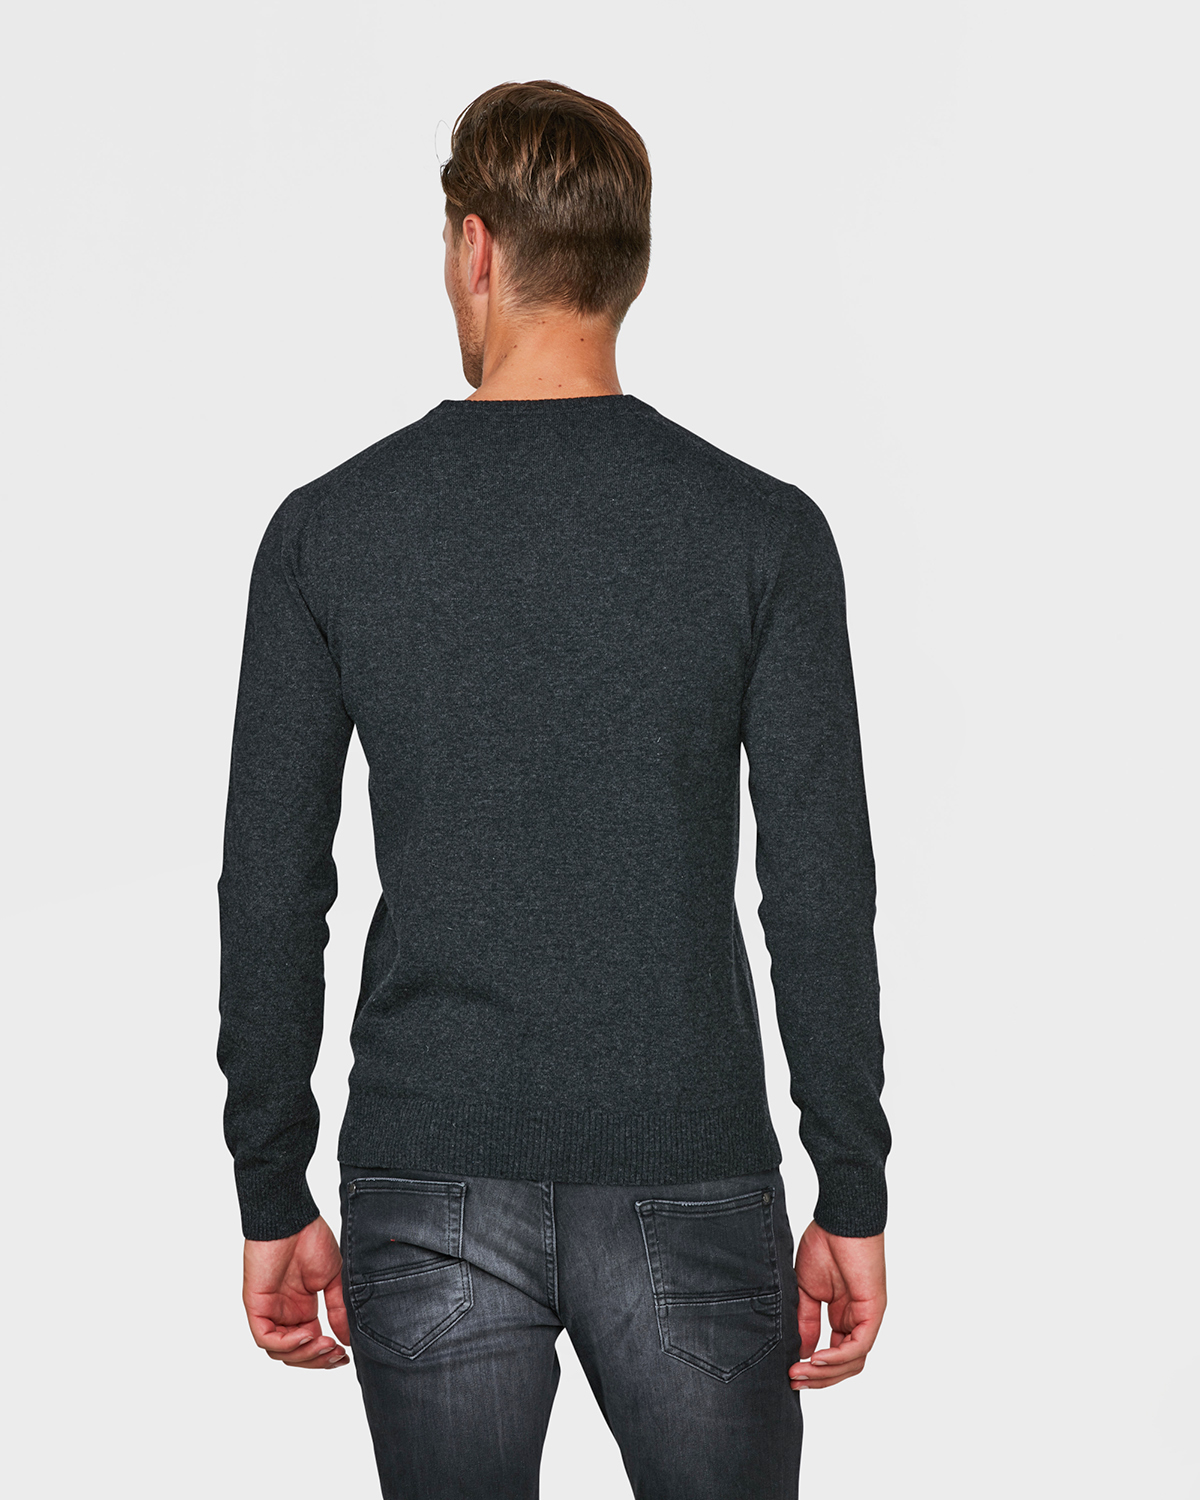 herren lambswool pullover mit v ausschnitt 79394673 we fashion. Black Bedroom Furniture Sets. Home Design Ideas